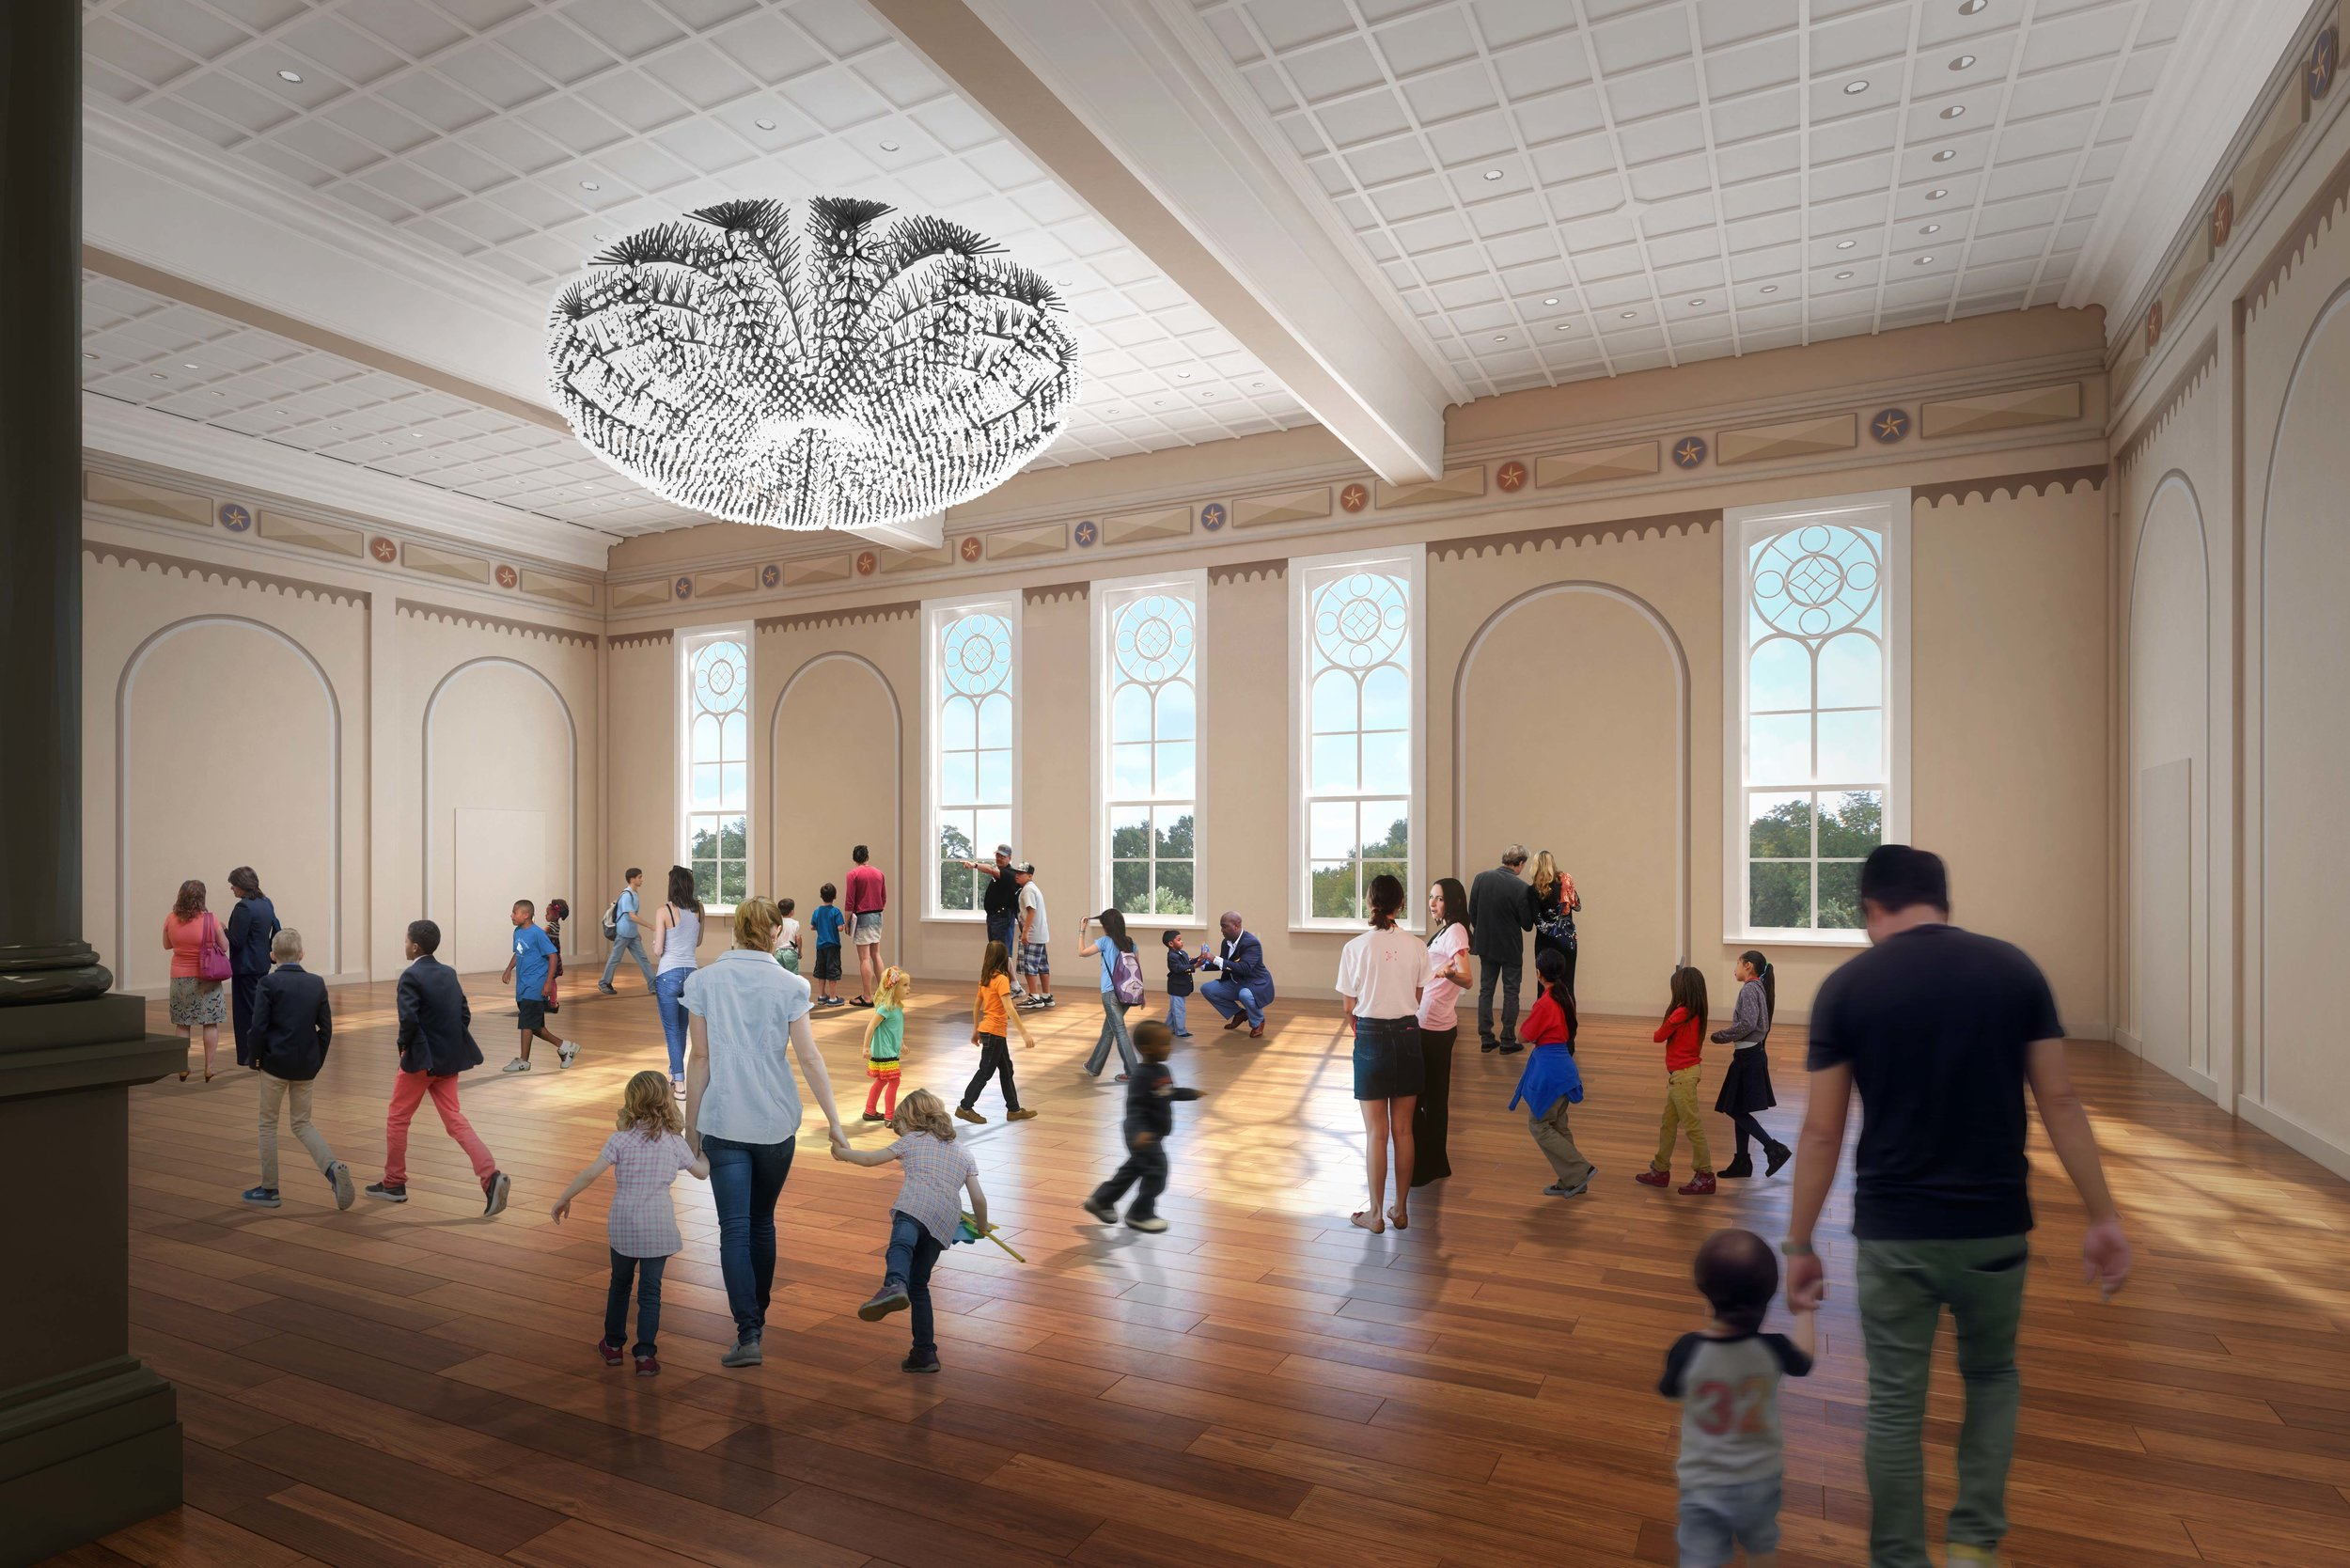 The globe acts as a chandelier, converting the Great Hall into a flexible space for events and programs.